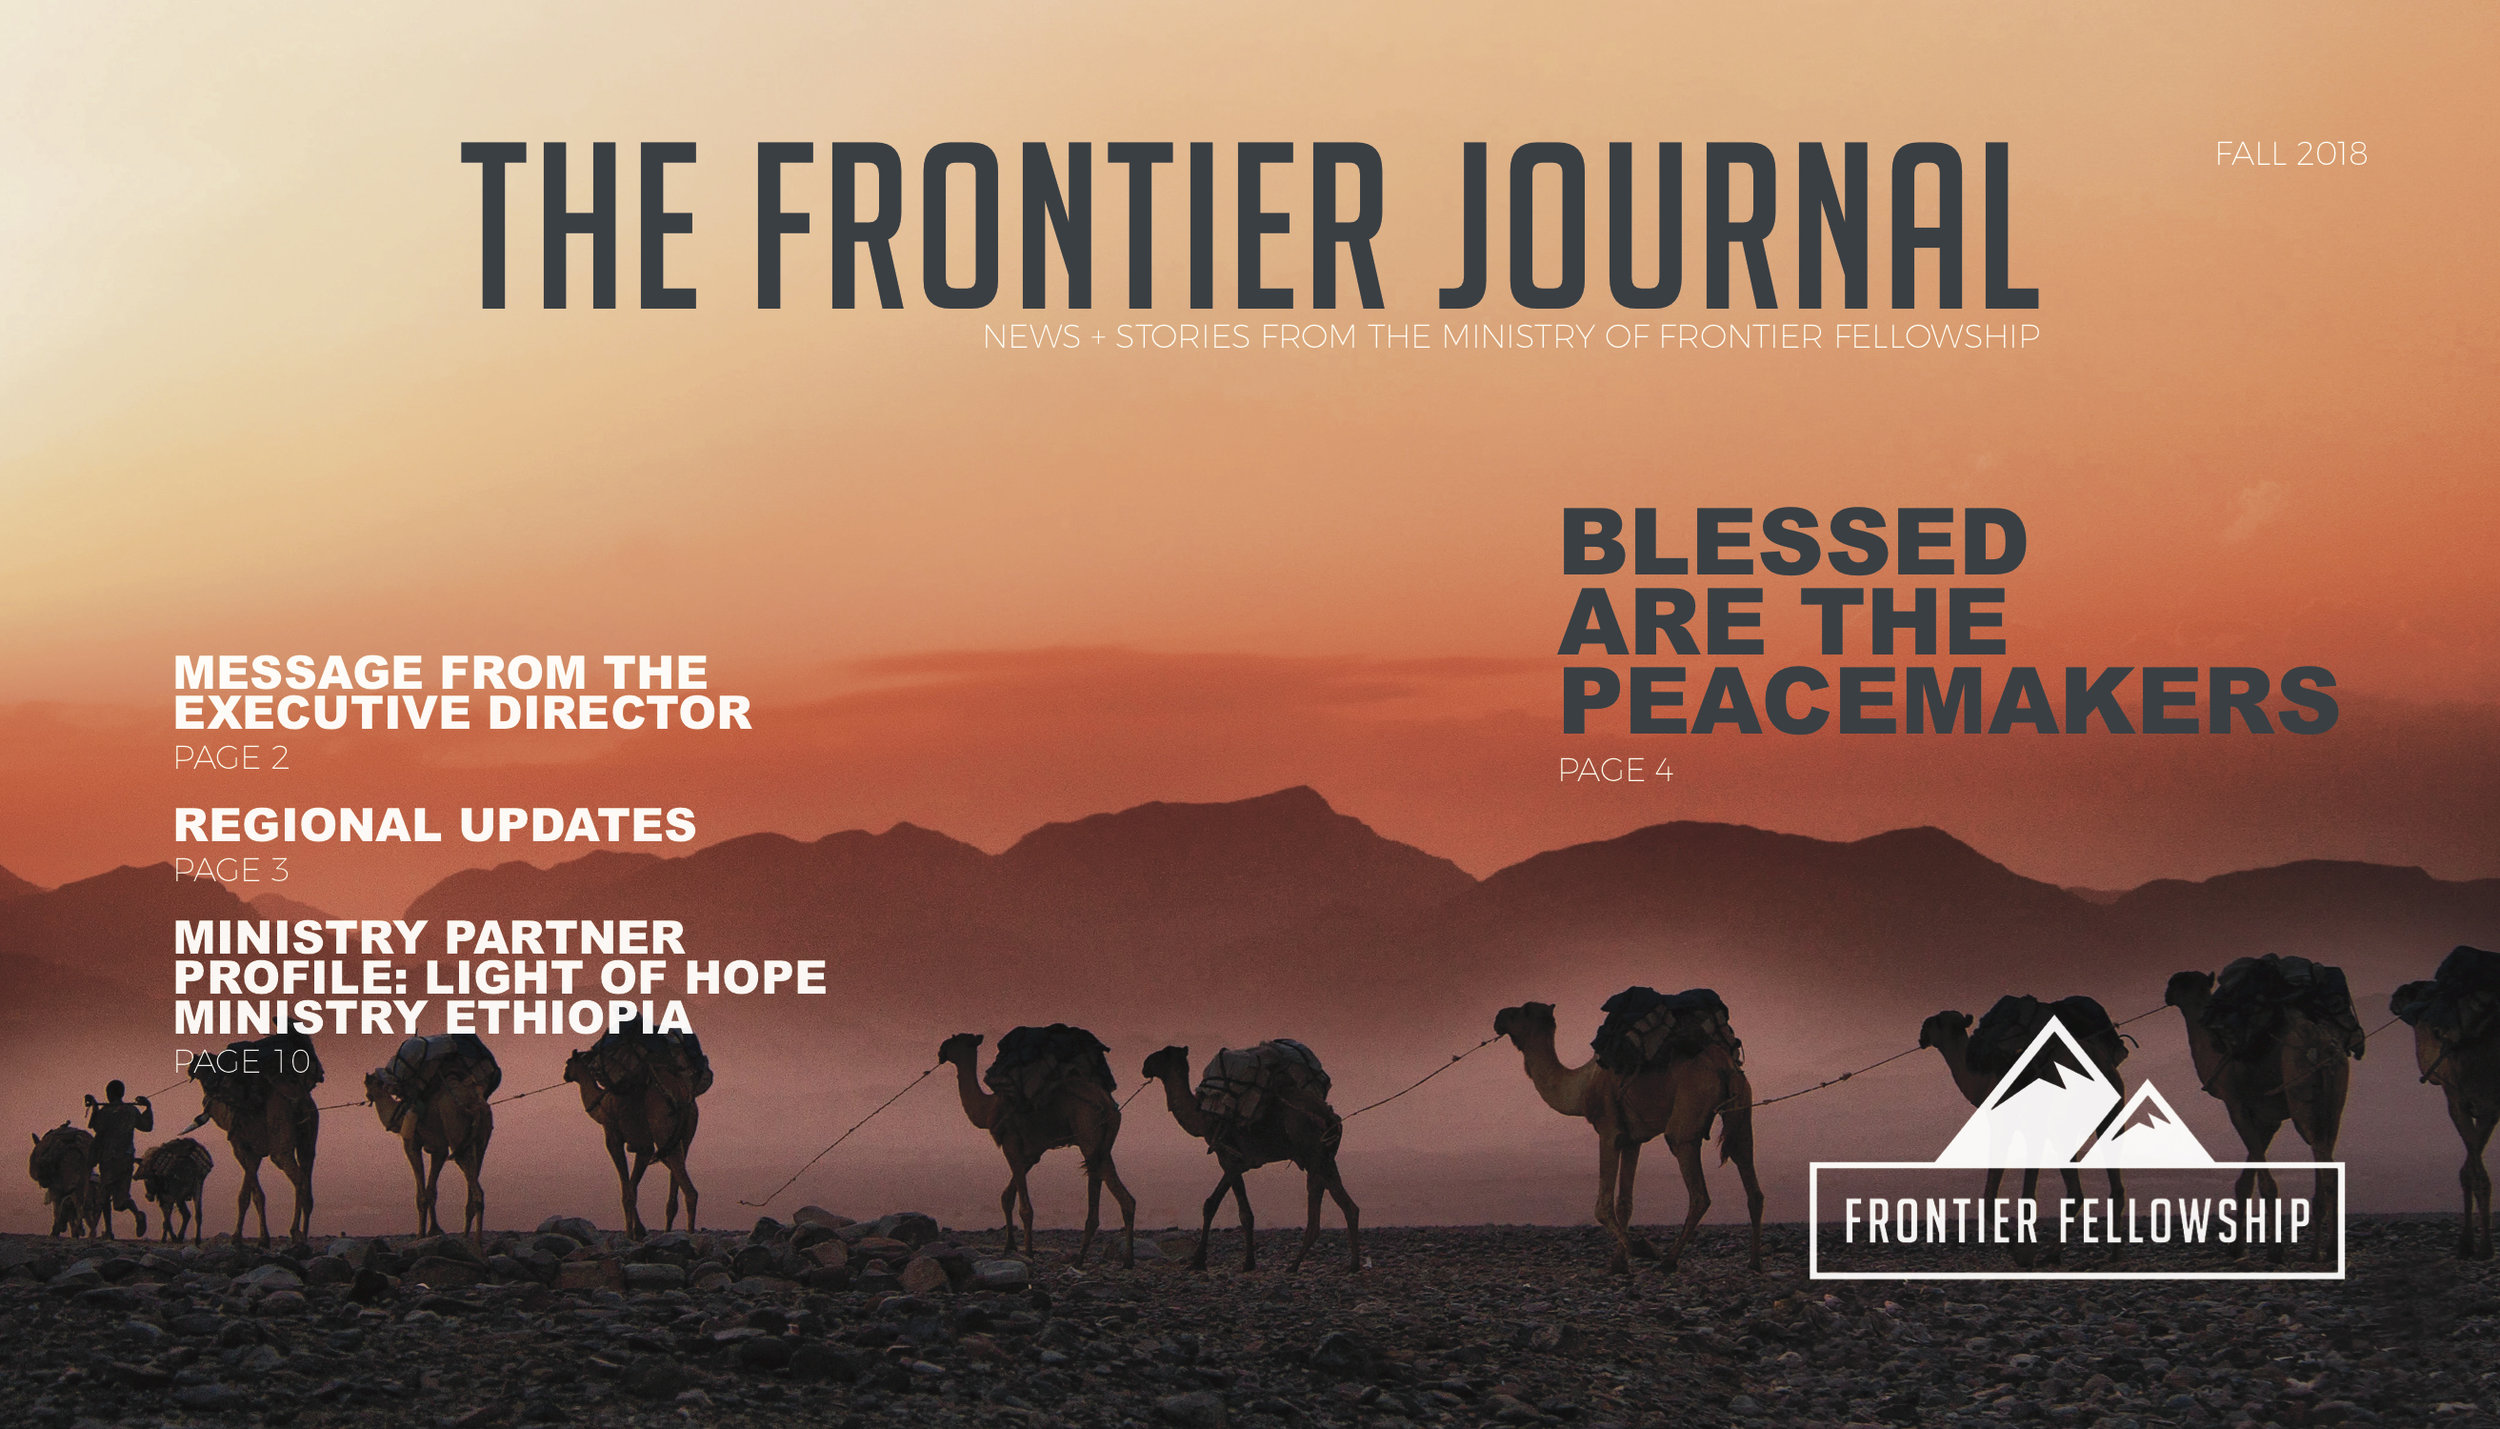 2018 Fall Frontier Journal Cover.jpg